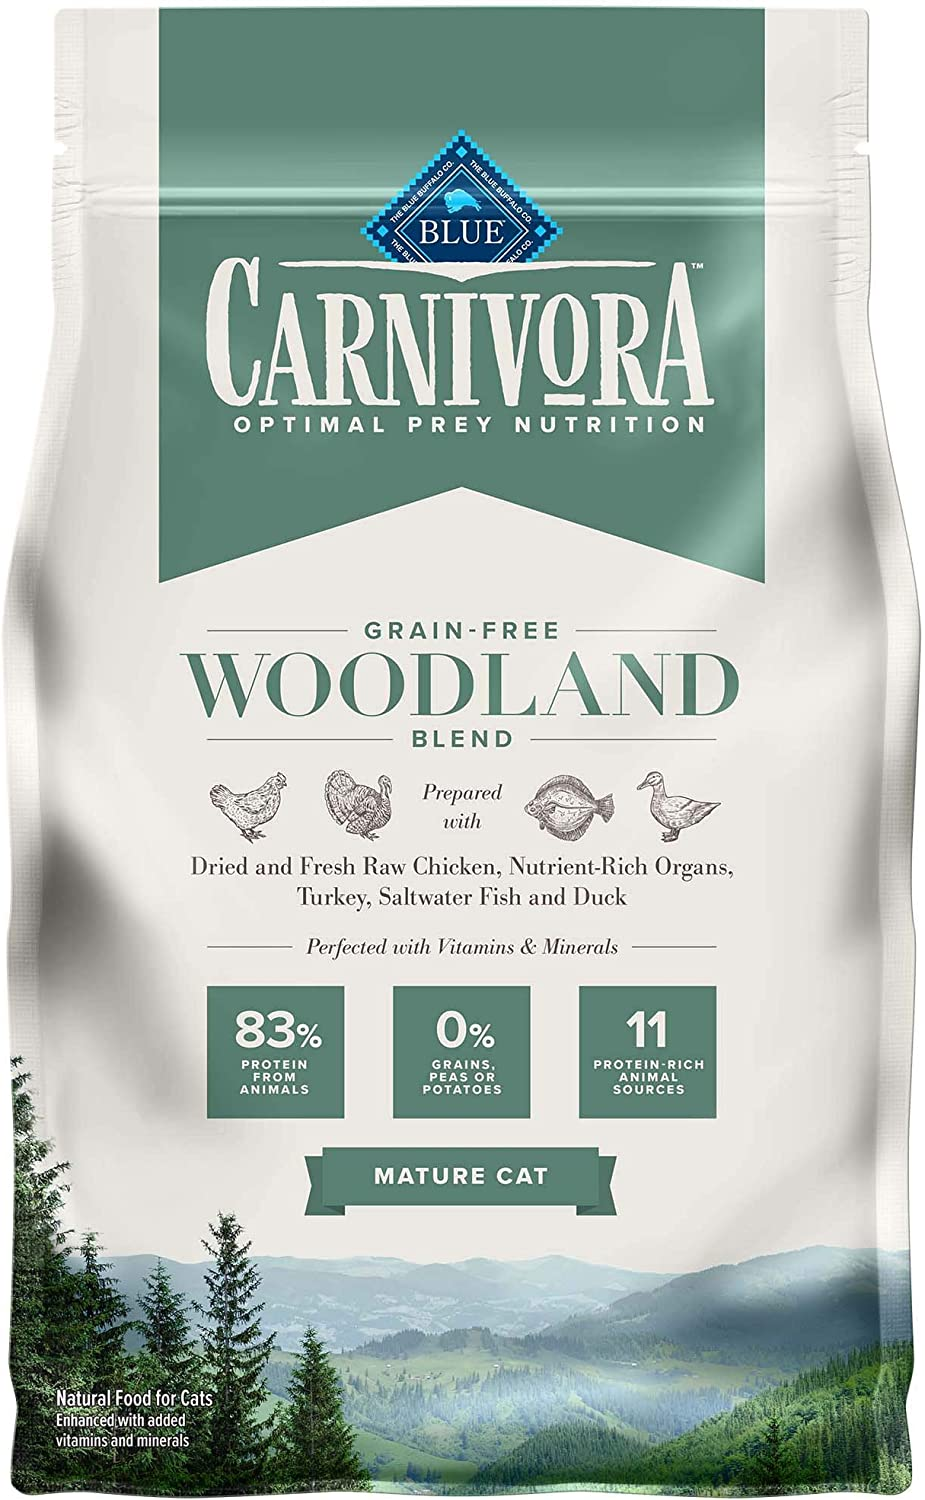 Blue Buffalo Carnivora Optimal Prey Nutrition High Protein, Grain Free Natural Mature Dry Cat Food, Woodland Blend 4lb